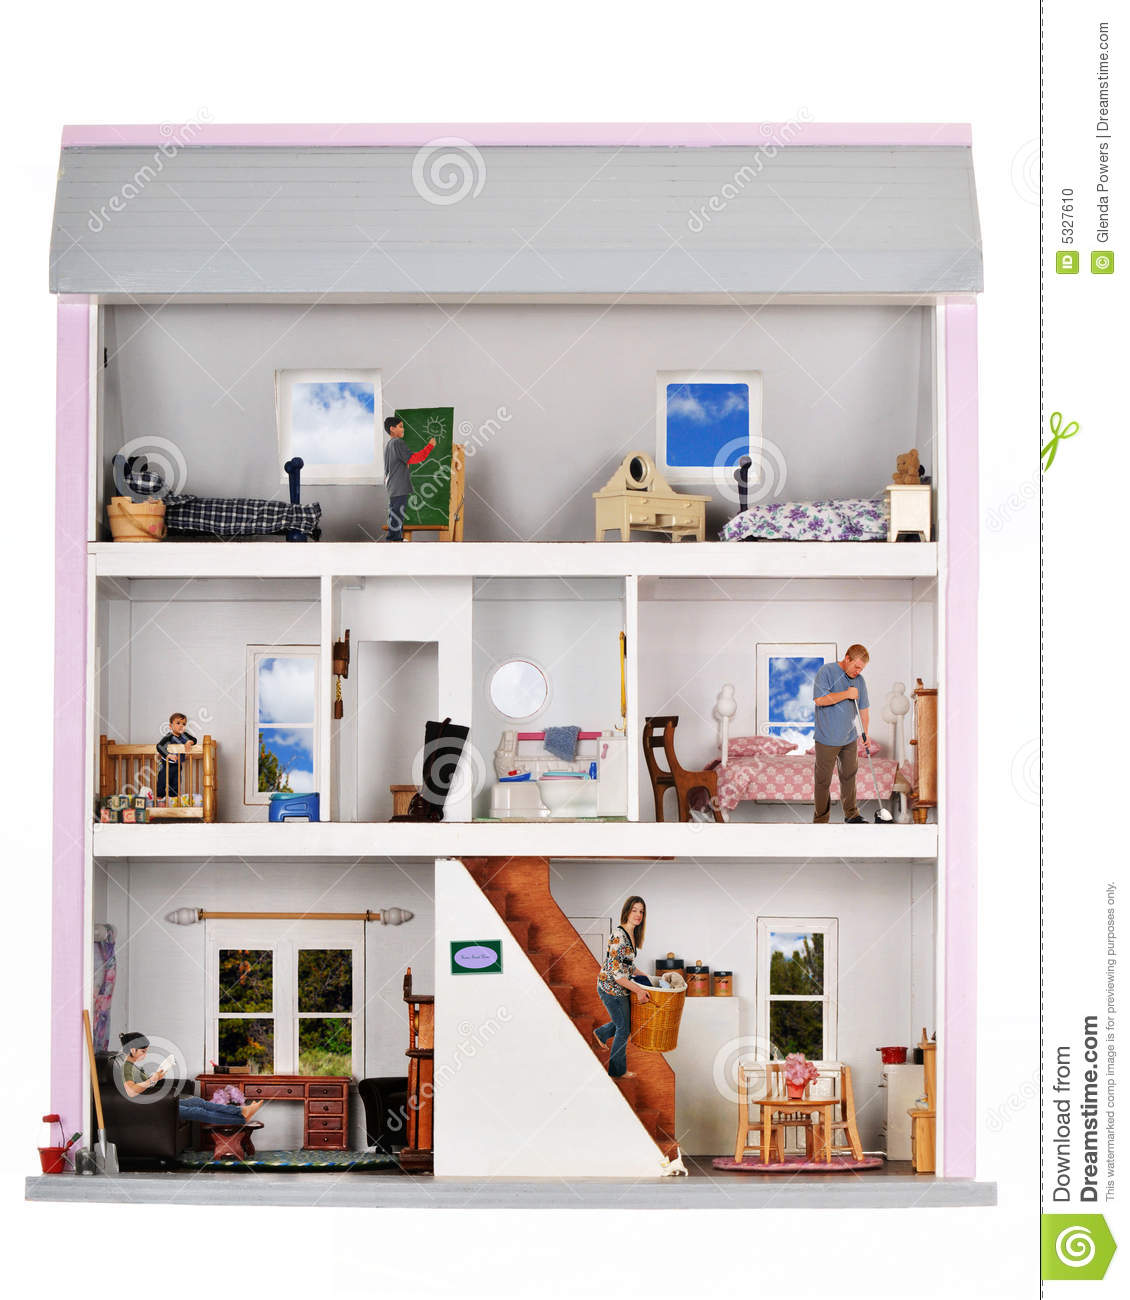 Playpen Baby Playing Life In A Doll House Stock Photo Image Of Drawing